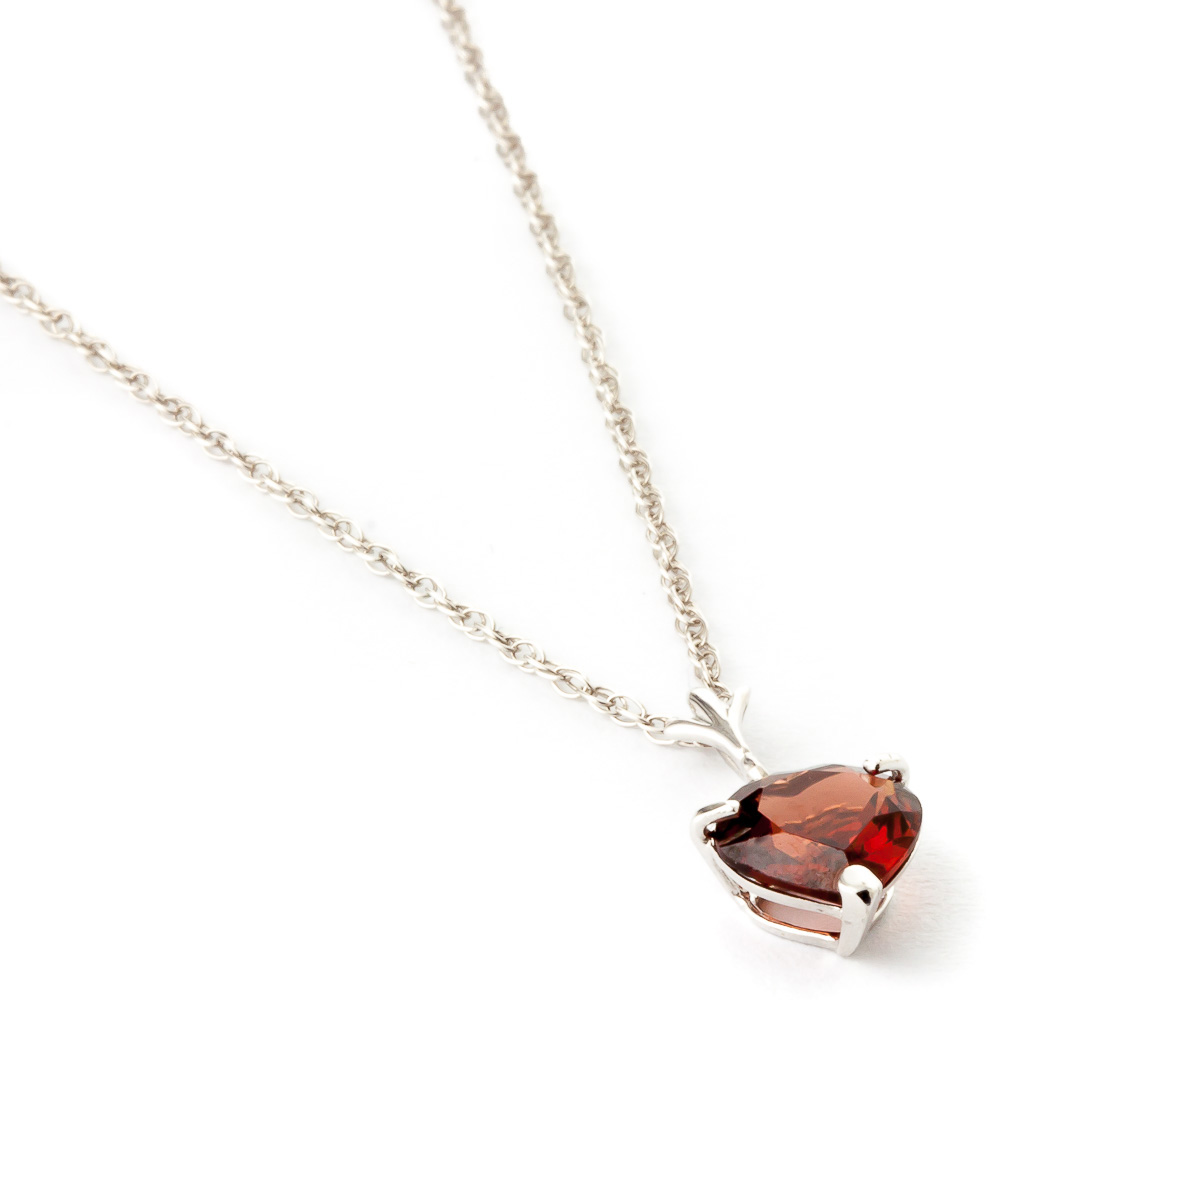 Garnet Heart Pendant Necklace 1.5ct in 9ct White Gold